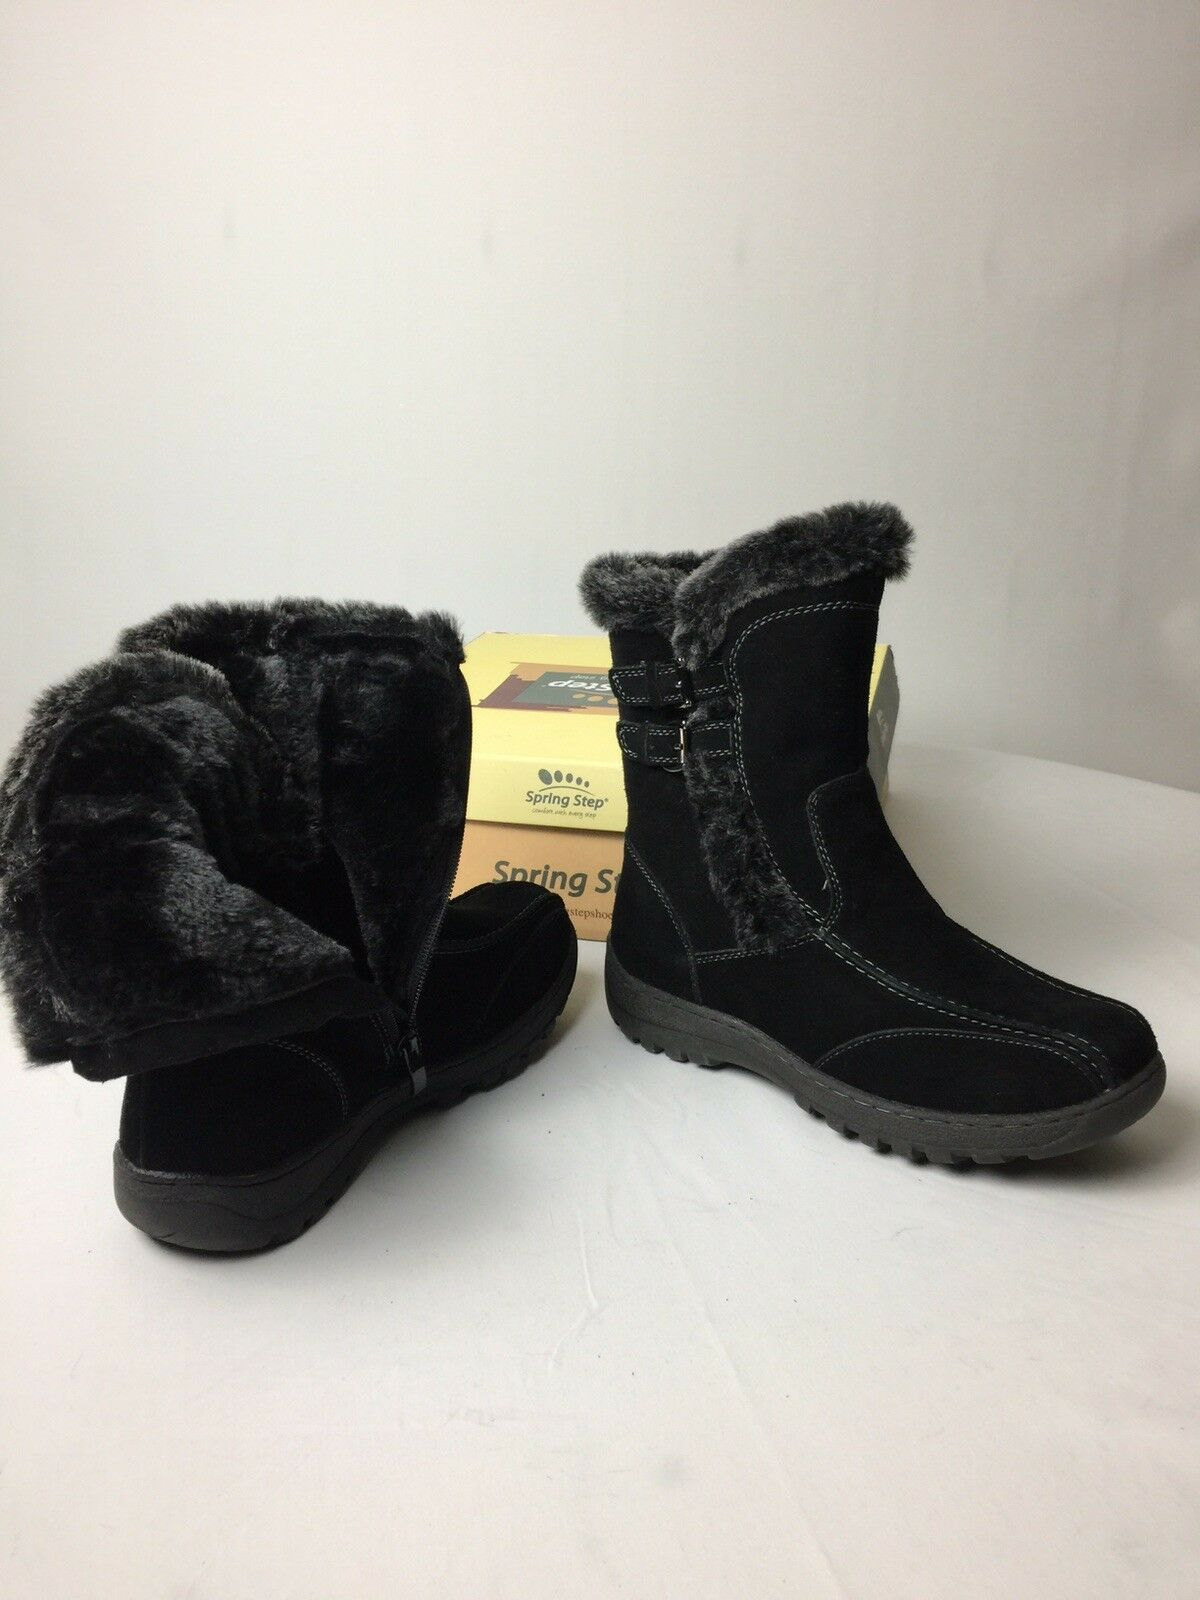 Spring Step New damen's Comfortable Comfortable Comfortable Stiefel Größe 6.5 With Box fd7bec